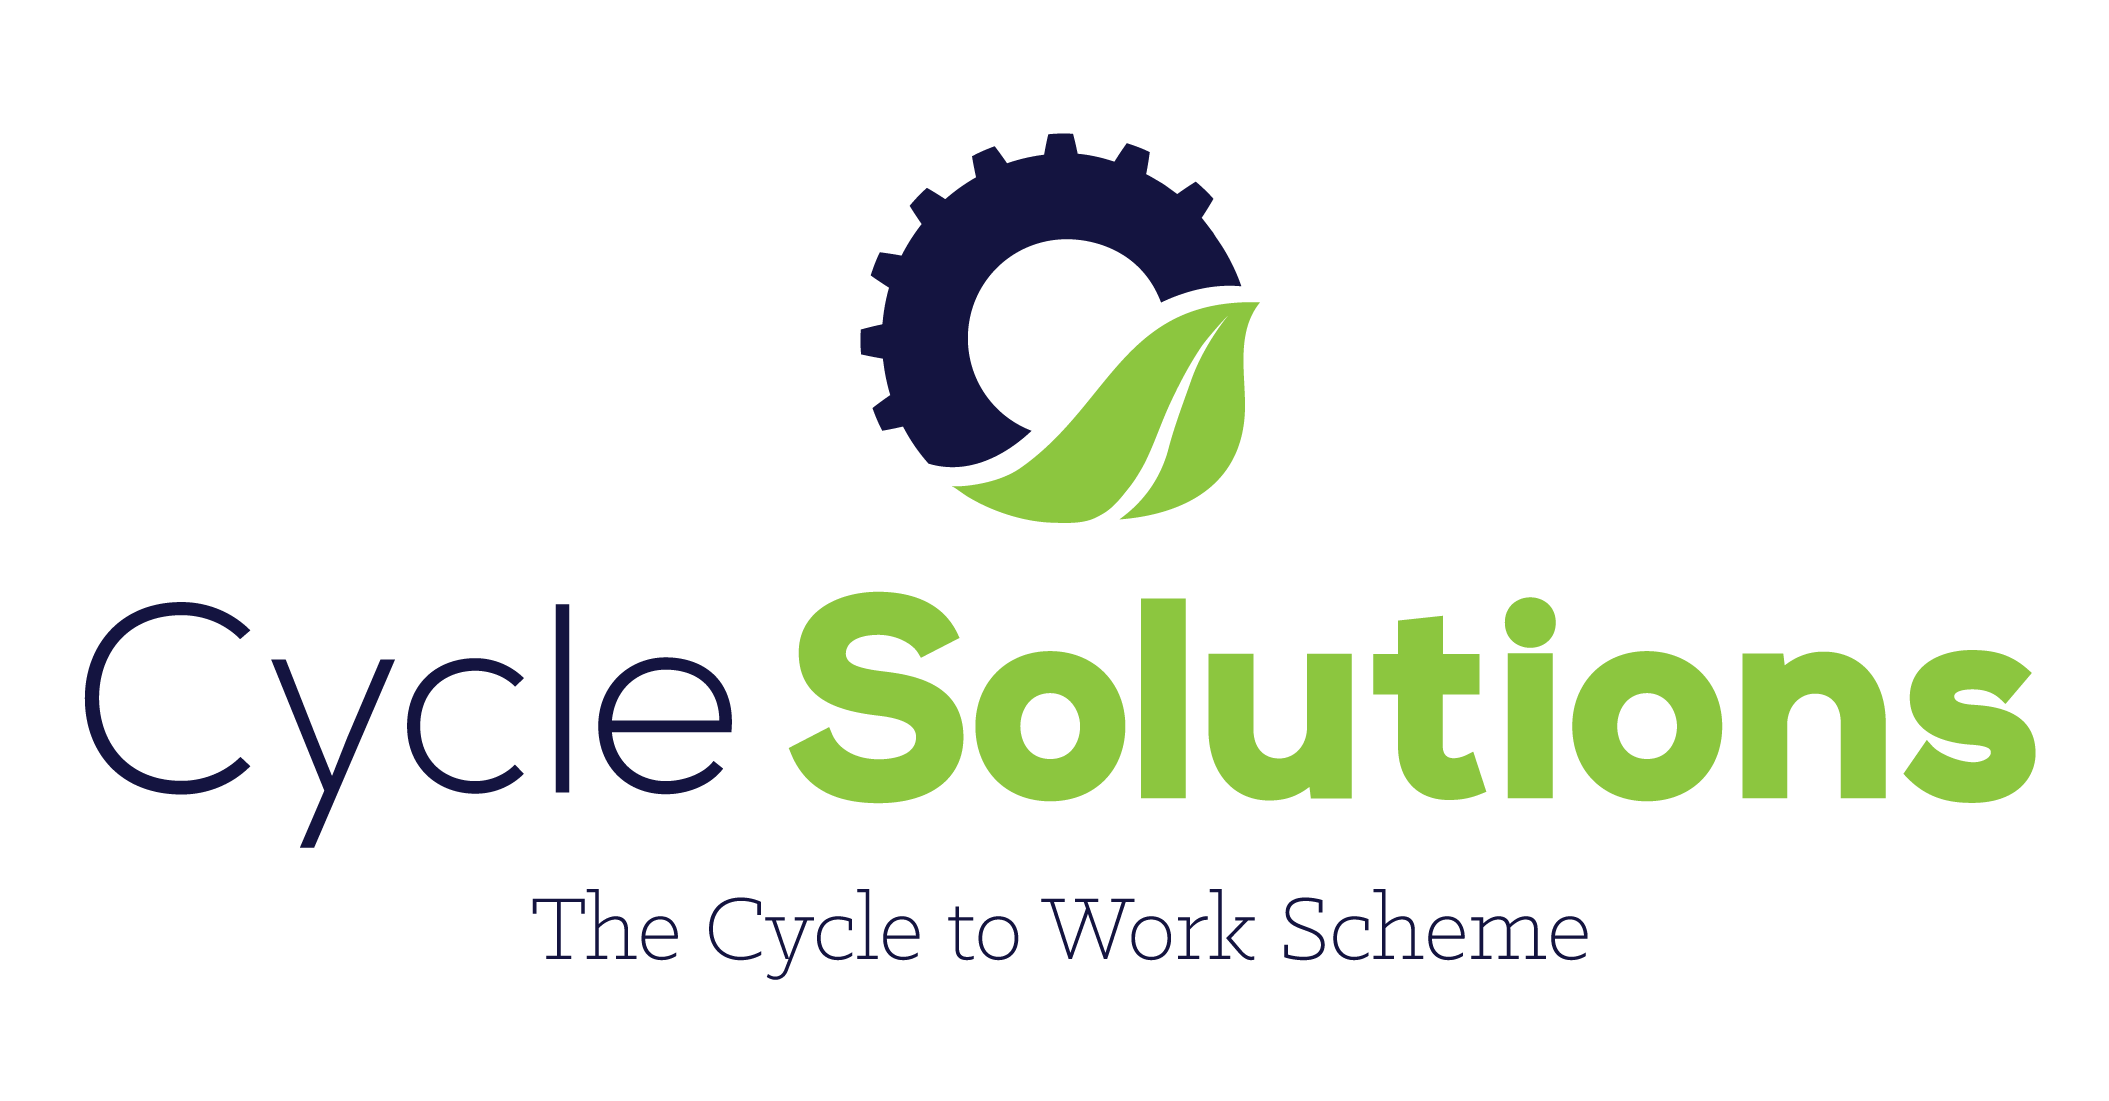 Cycle Solutions - the cycle to work scheme